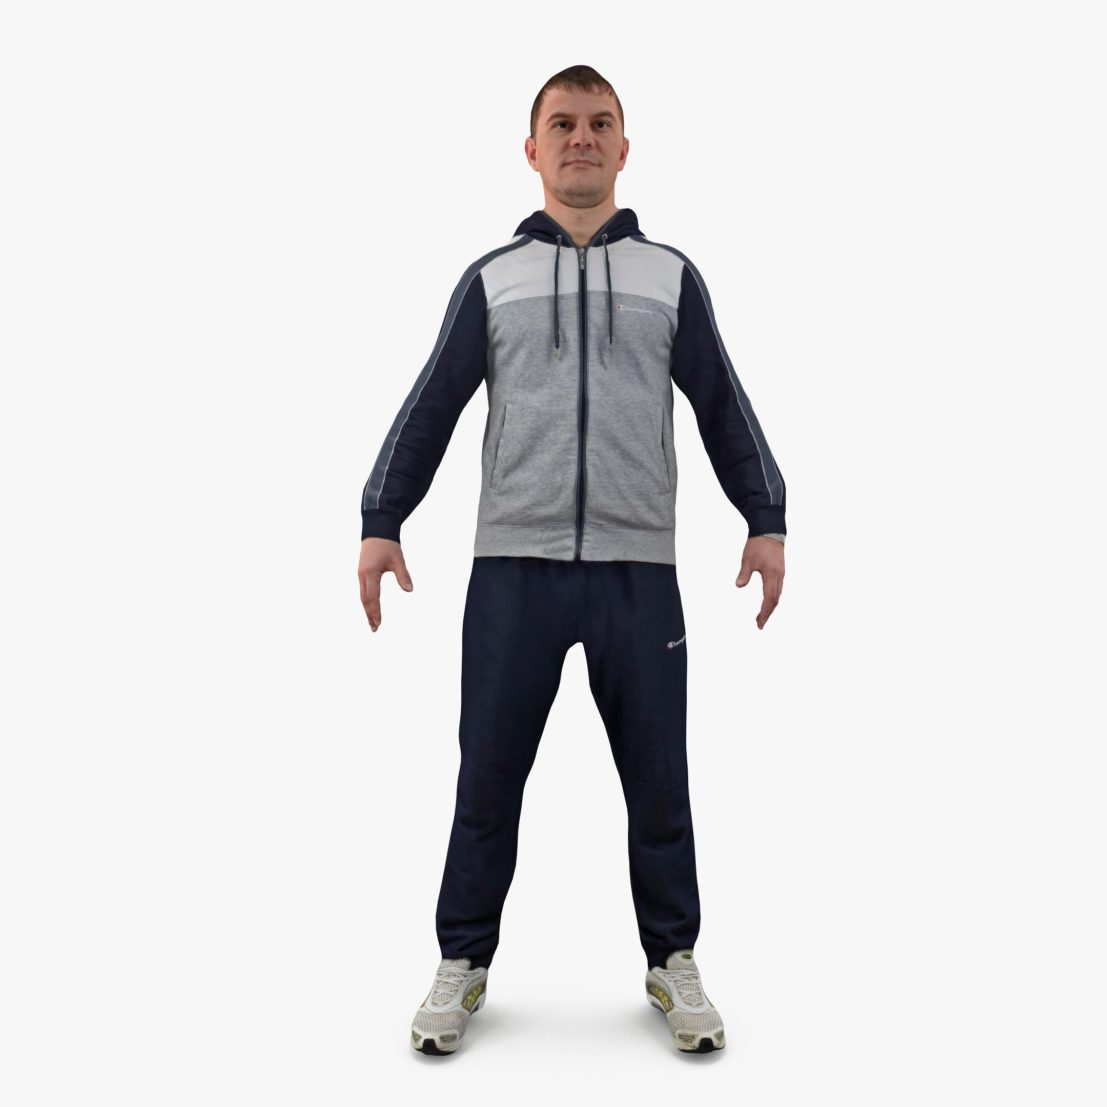 Sportsman Apose 3D Model | 3DTree Scanning Studio